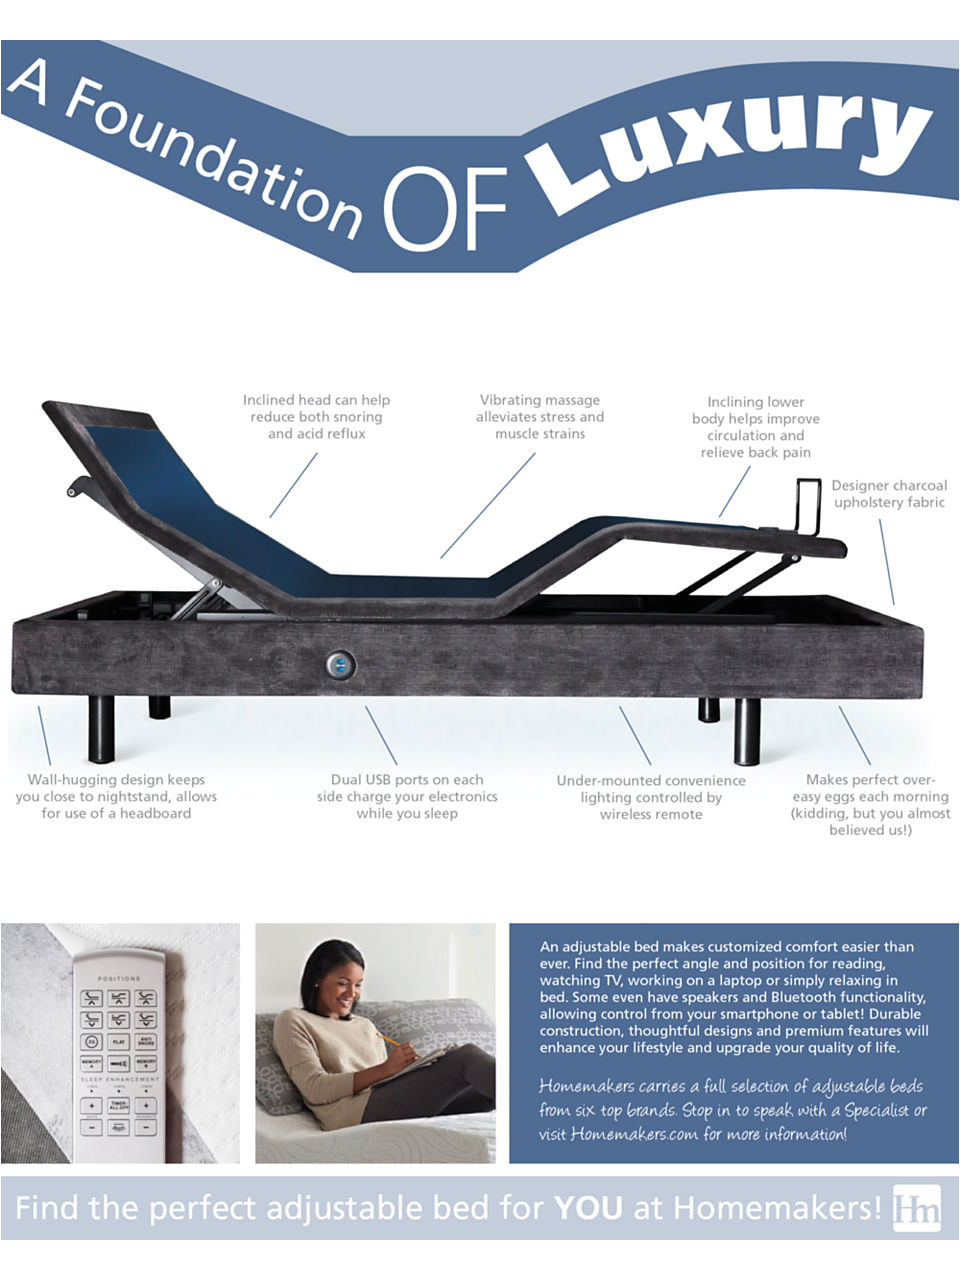 Homemakers Des Moines Mattress Sale Infographic Find the Perfect Adjustable Base Homemakers